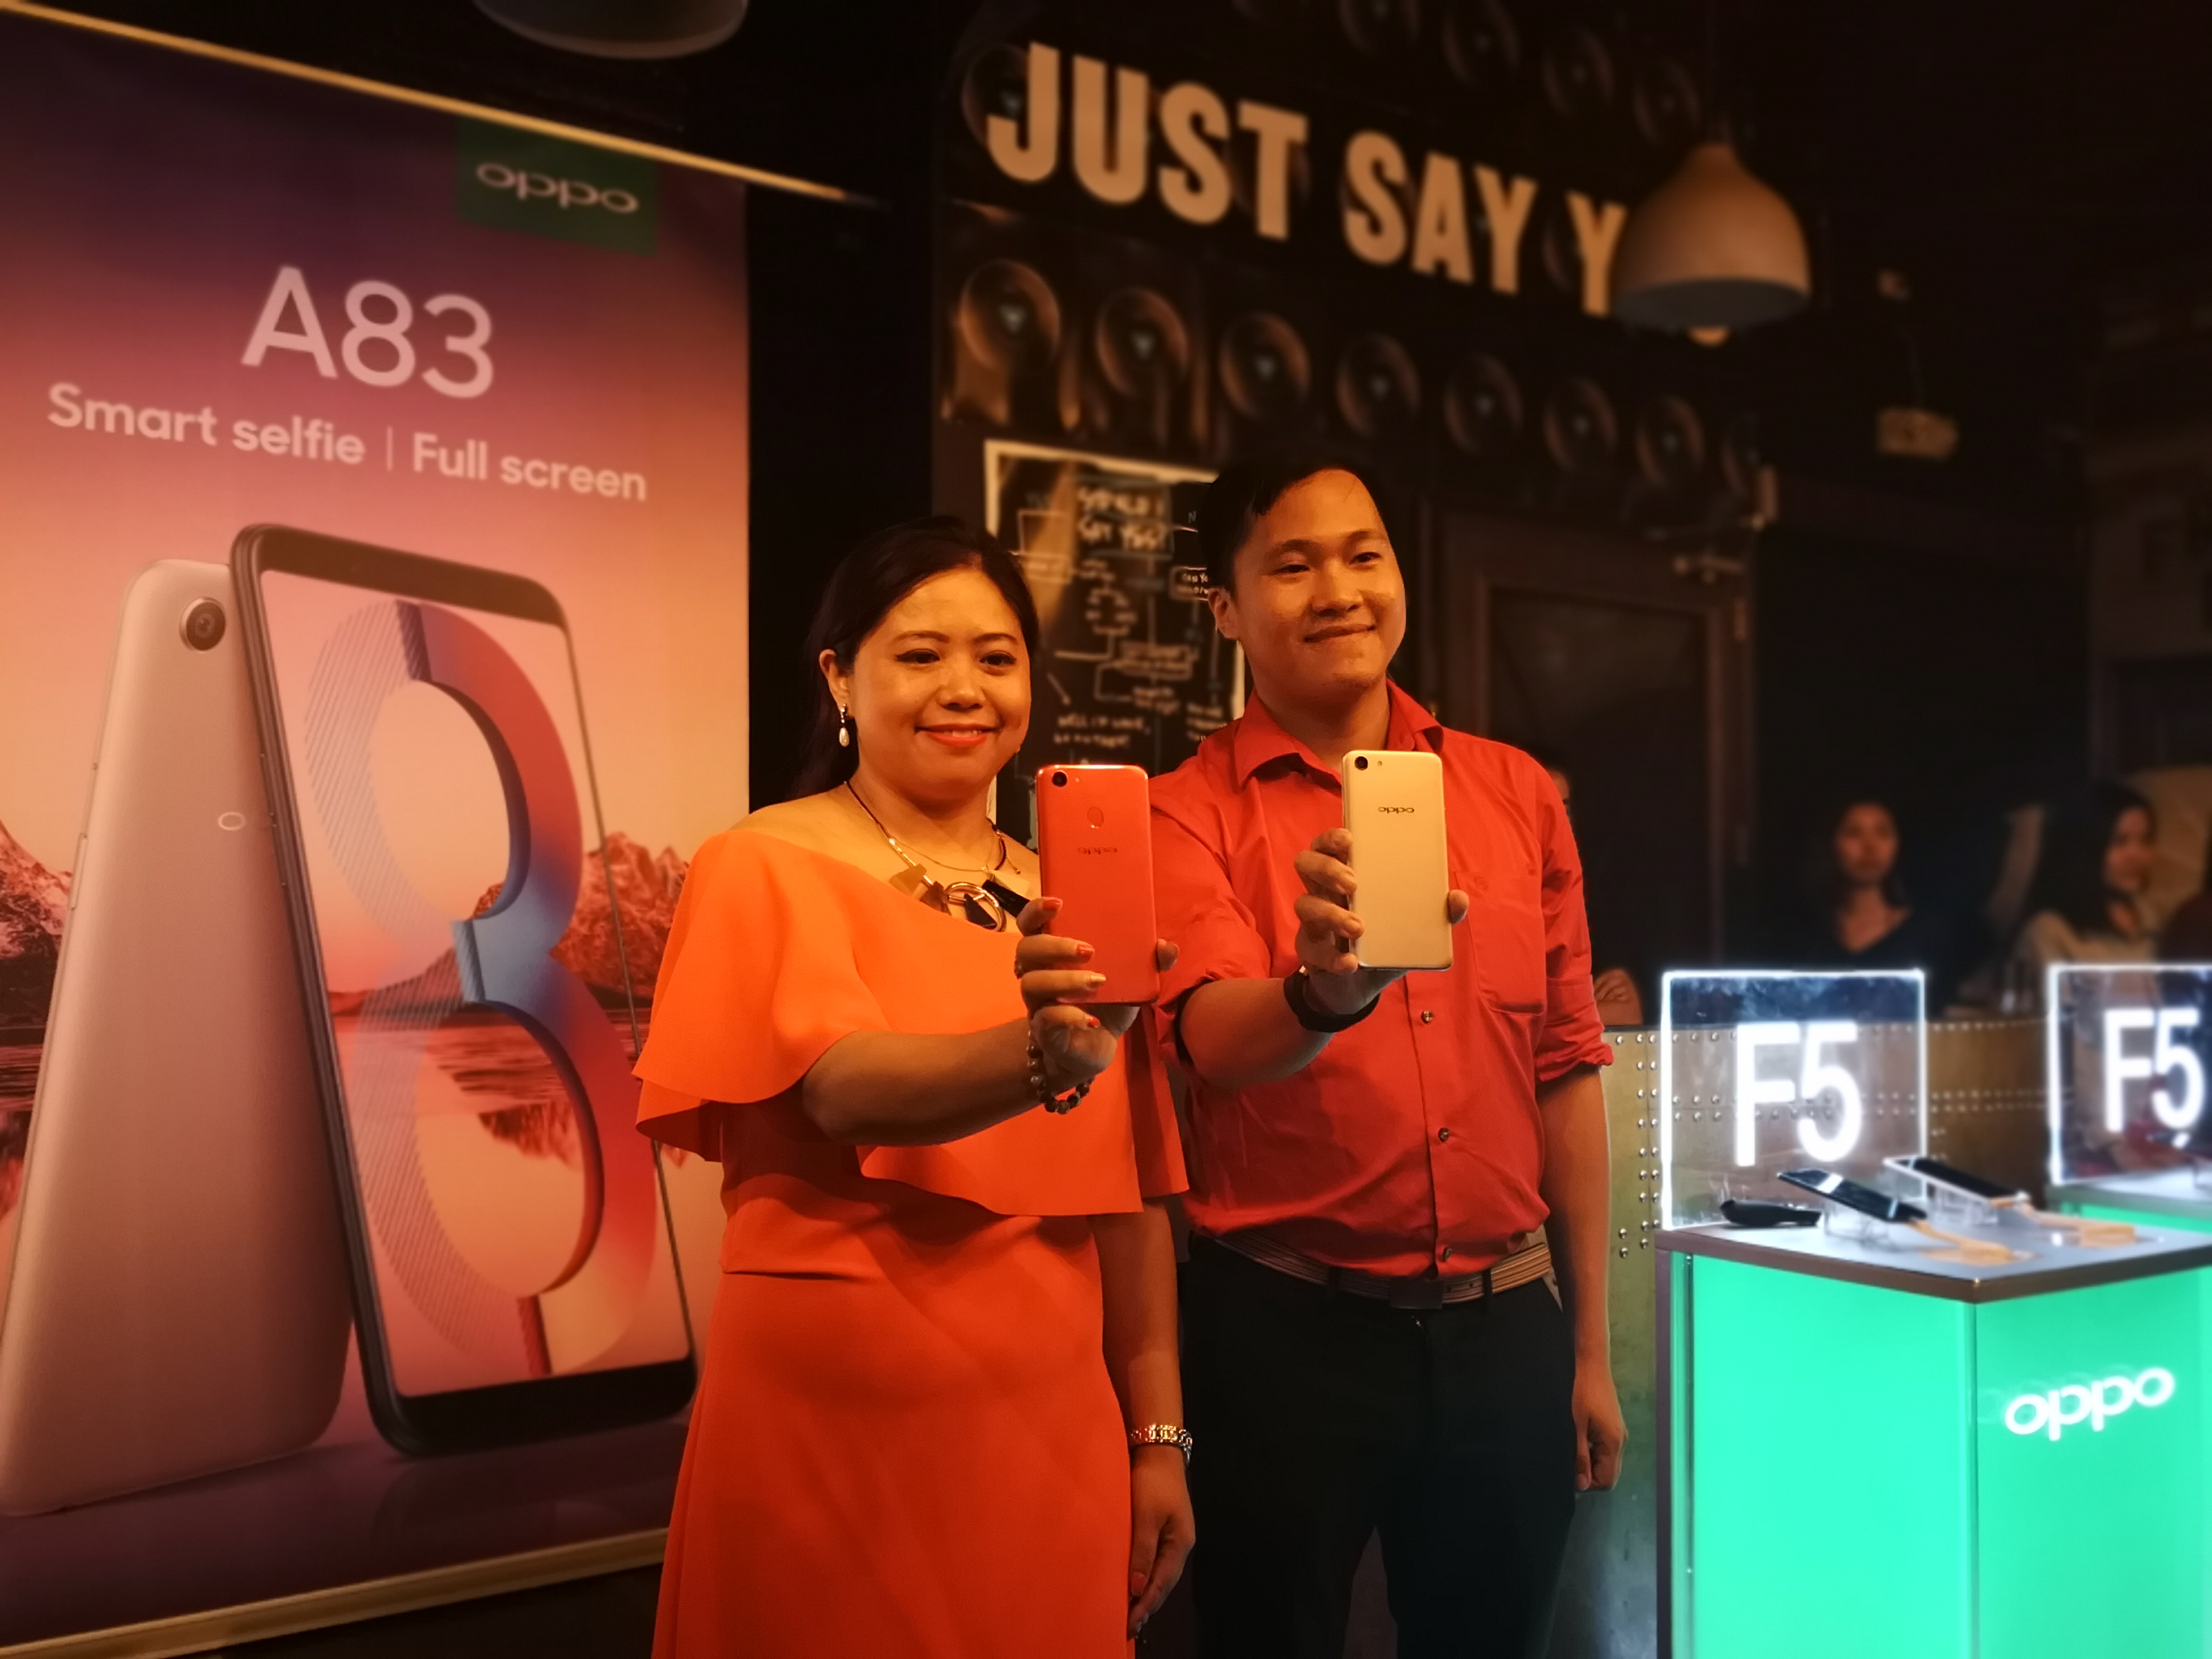 OPPO A83 is now available in PH for only PhP 9,990